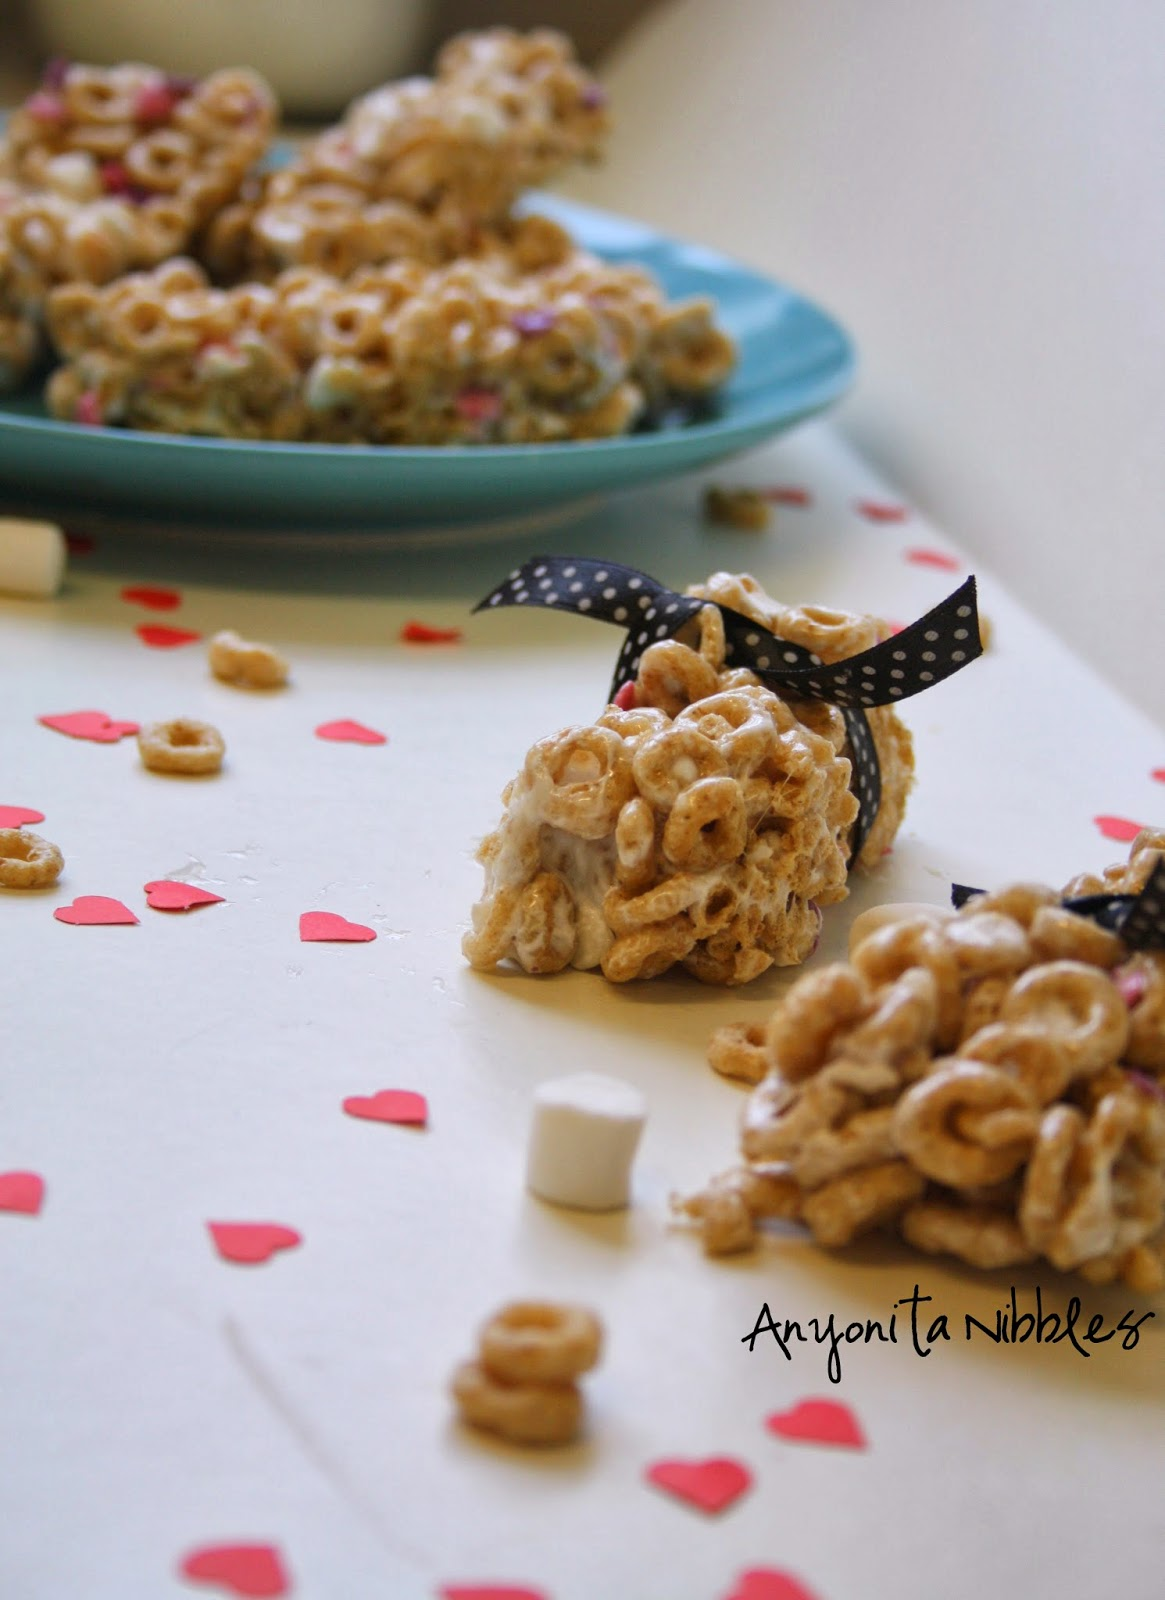 Eat your breakfast on the run with these delicious homemade milk & cereal bars.